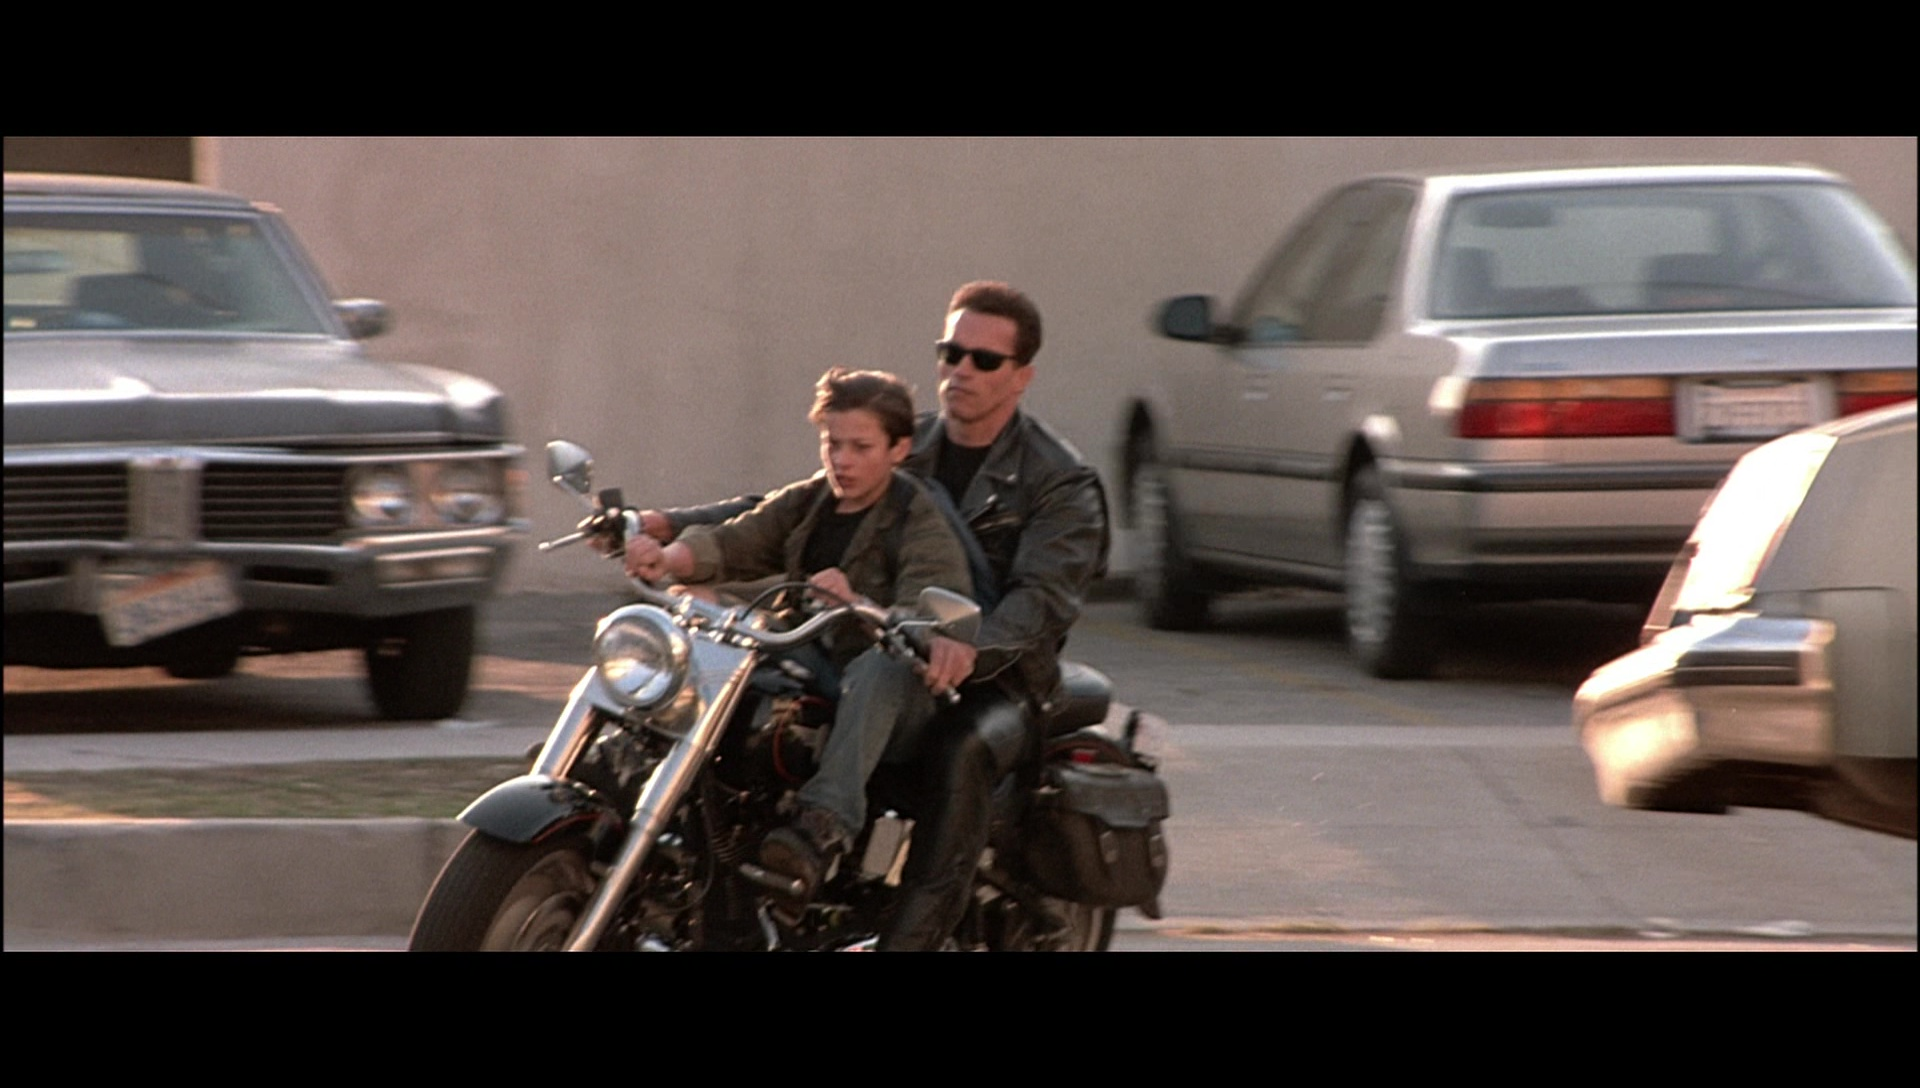 Used Harley Davidson Motorcycles >> Harley-Davidson Motorcycle Driven by Arnold Schwarzenegger in Terminator 2: Judgment Day (1991 ...